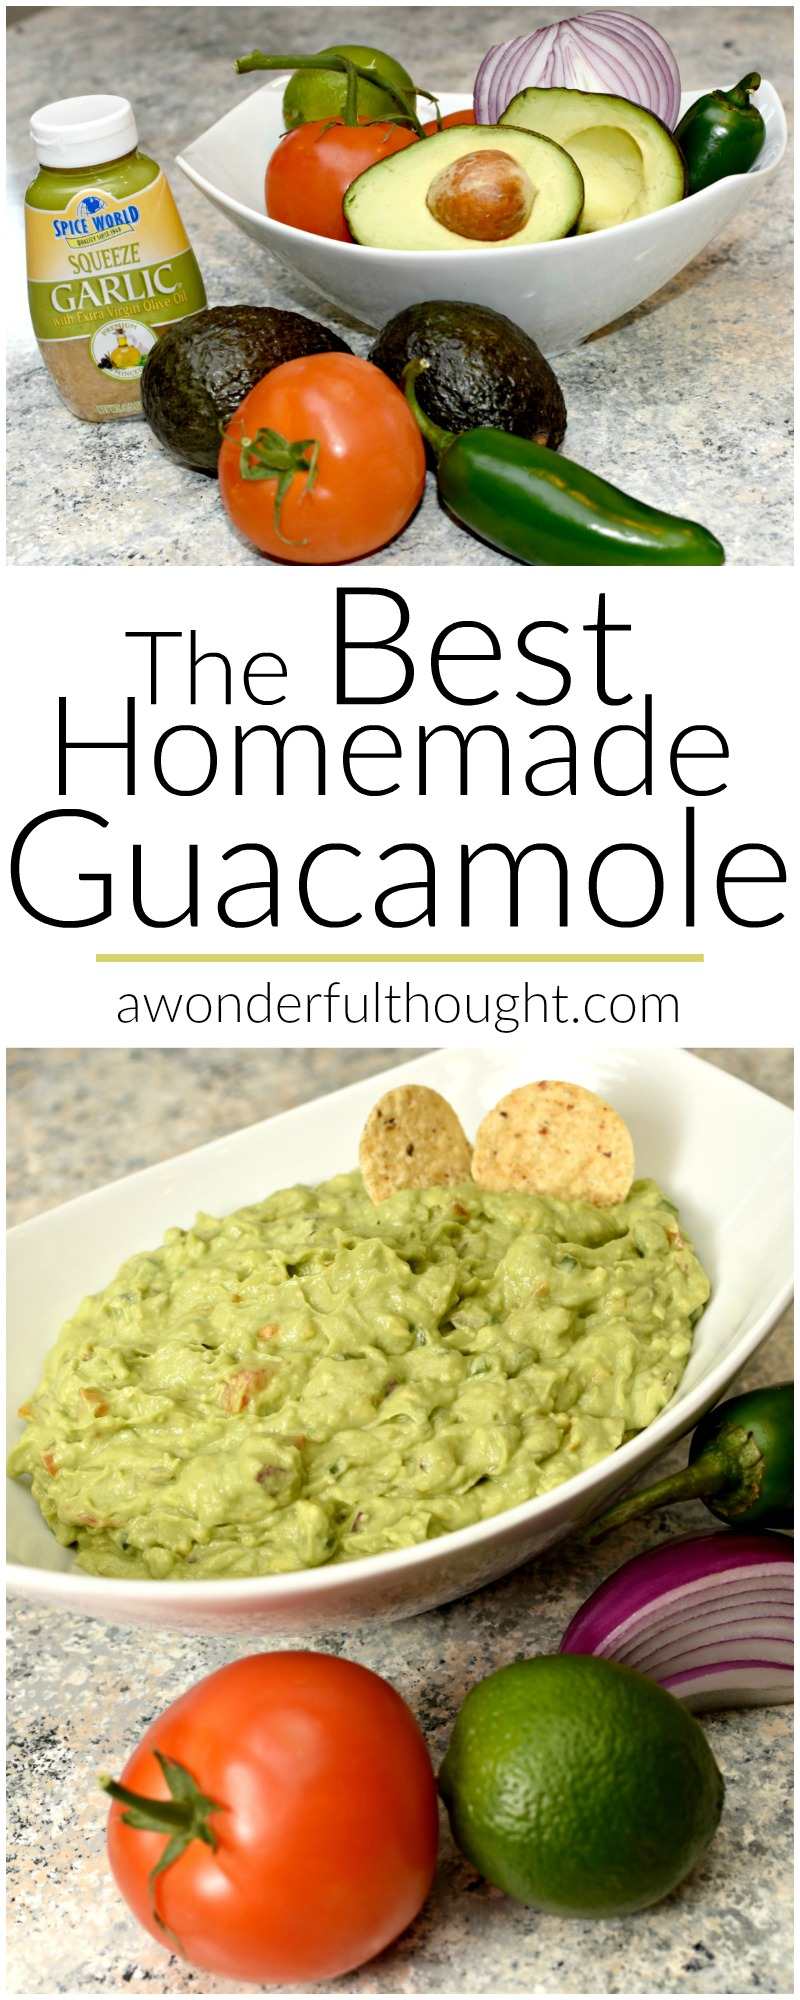 The Best Homemade Guacamole | awonderfulthought.com